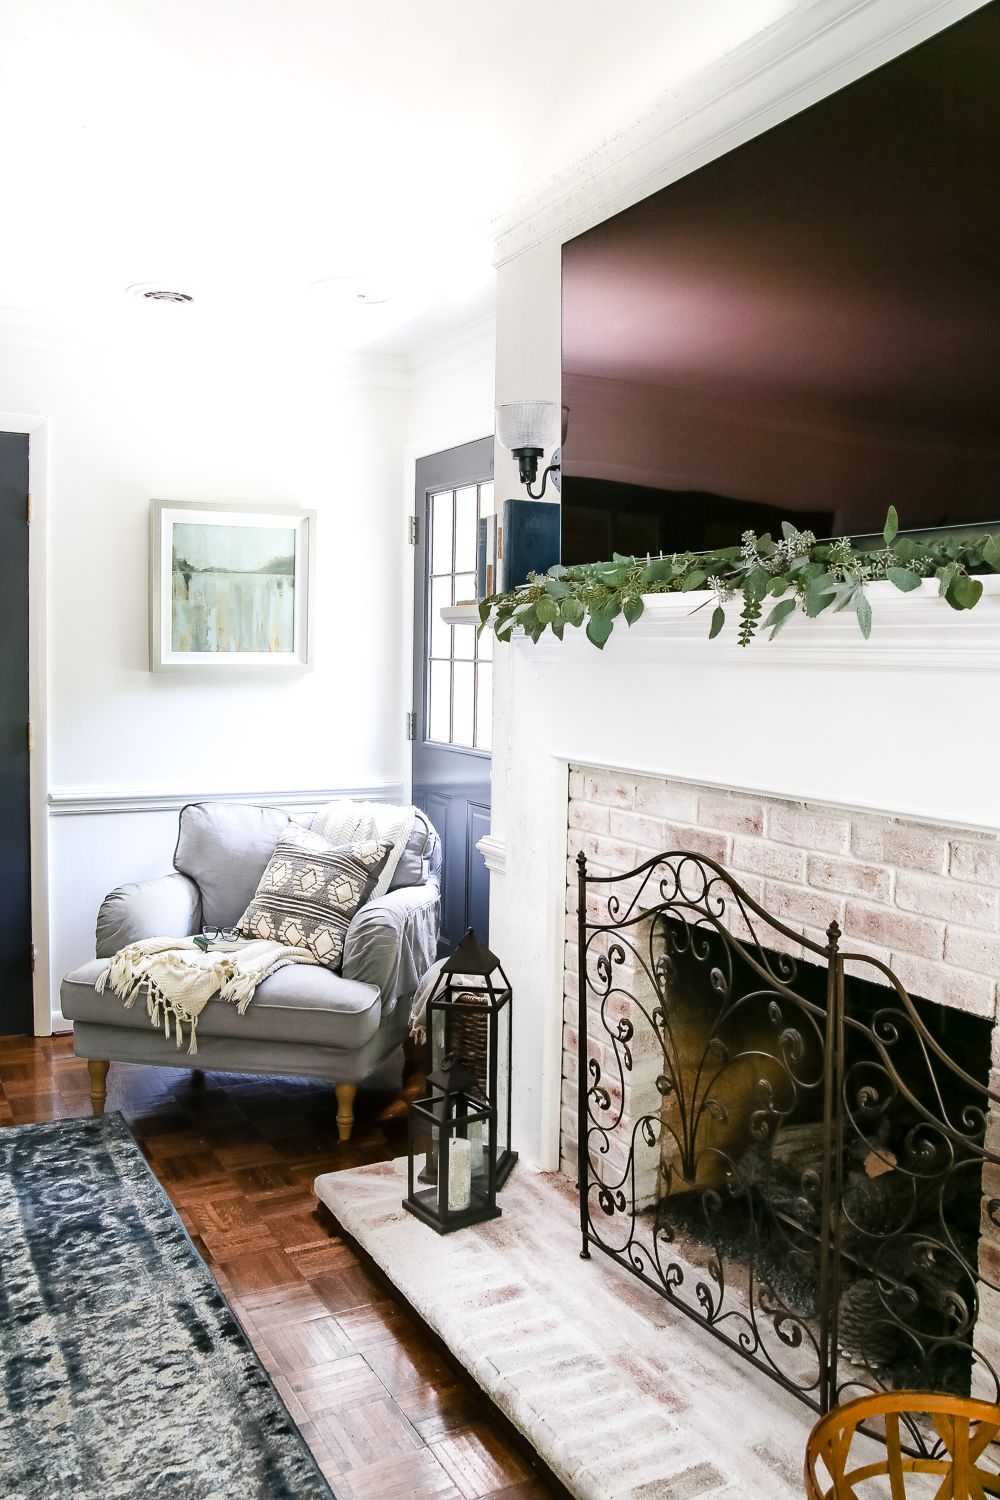 How to Make Your Home Look Luxurious on a Budget | Pinterest ...